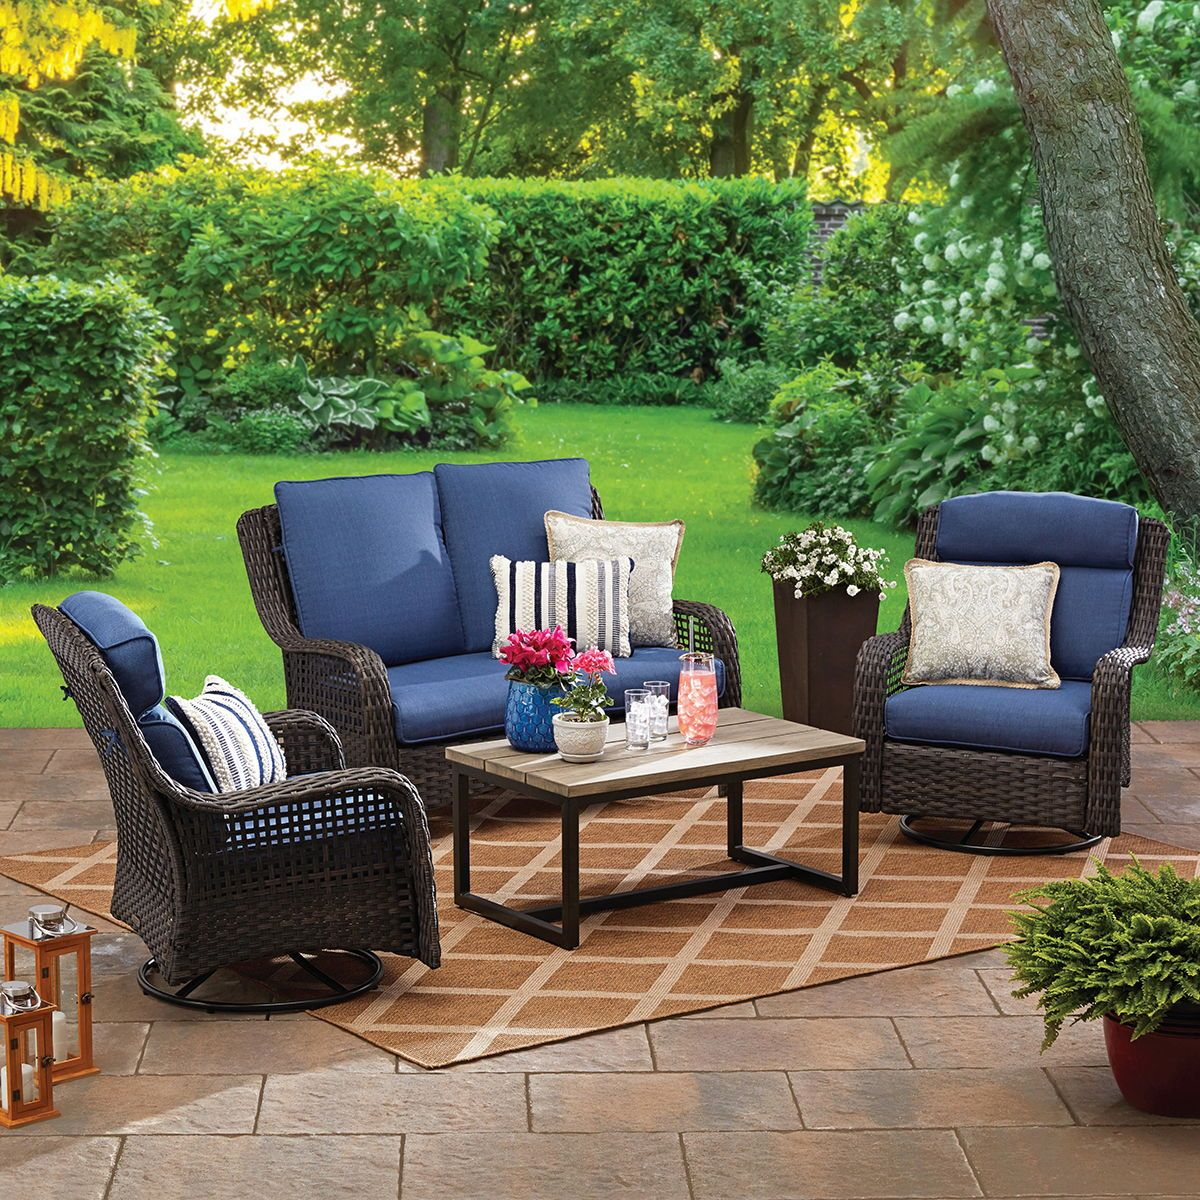 Better Homes & Gardens Ravenbrooke 4Piece Patio Furniture